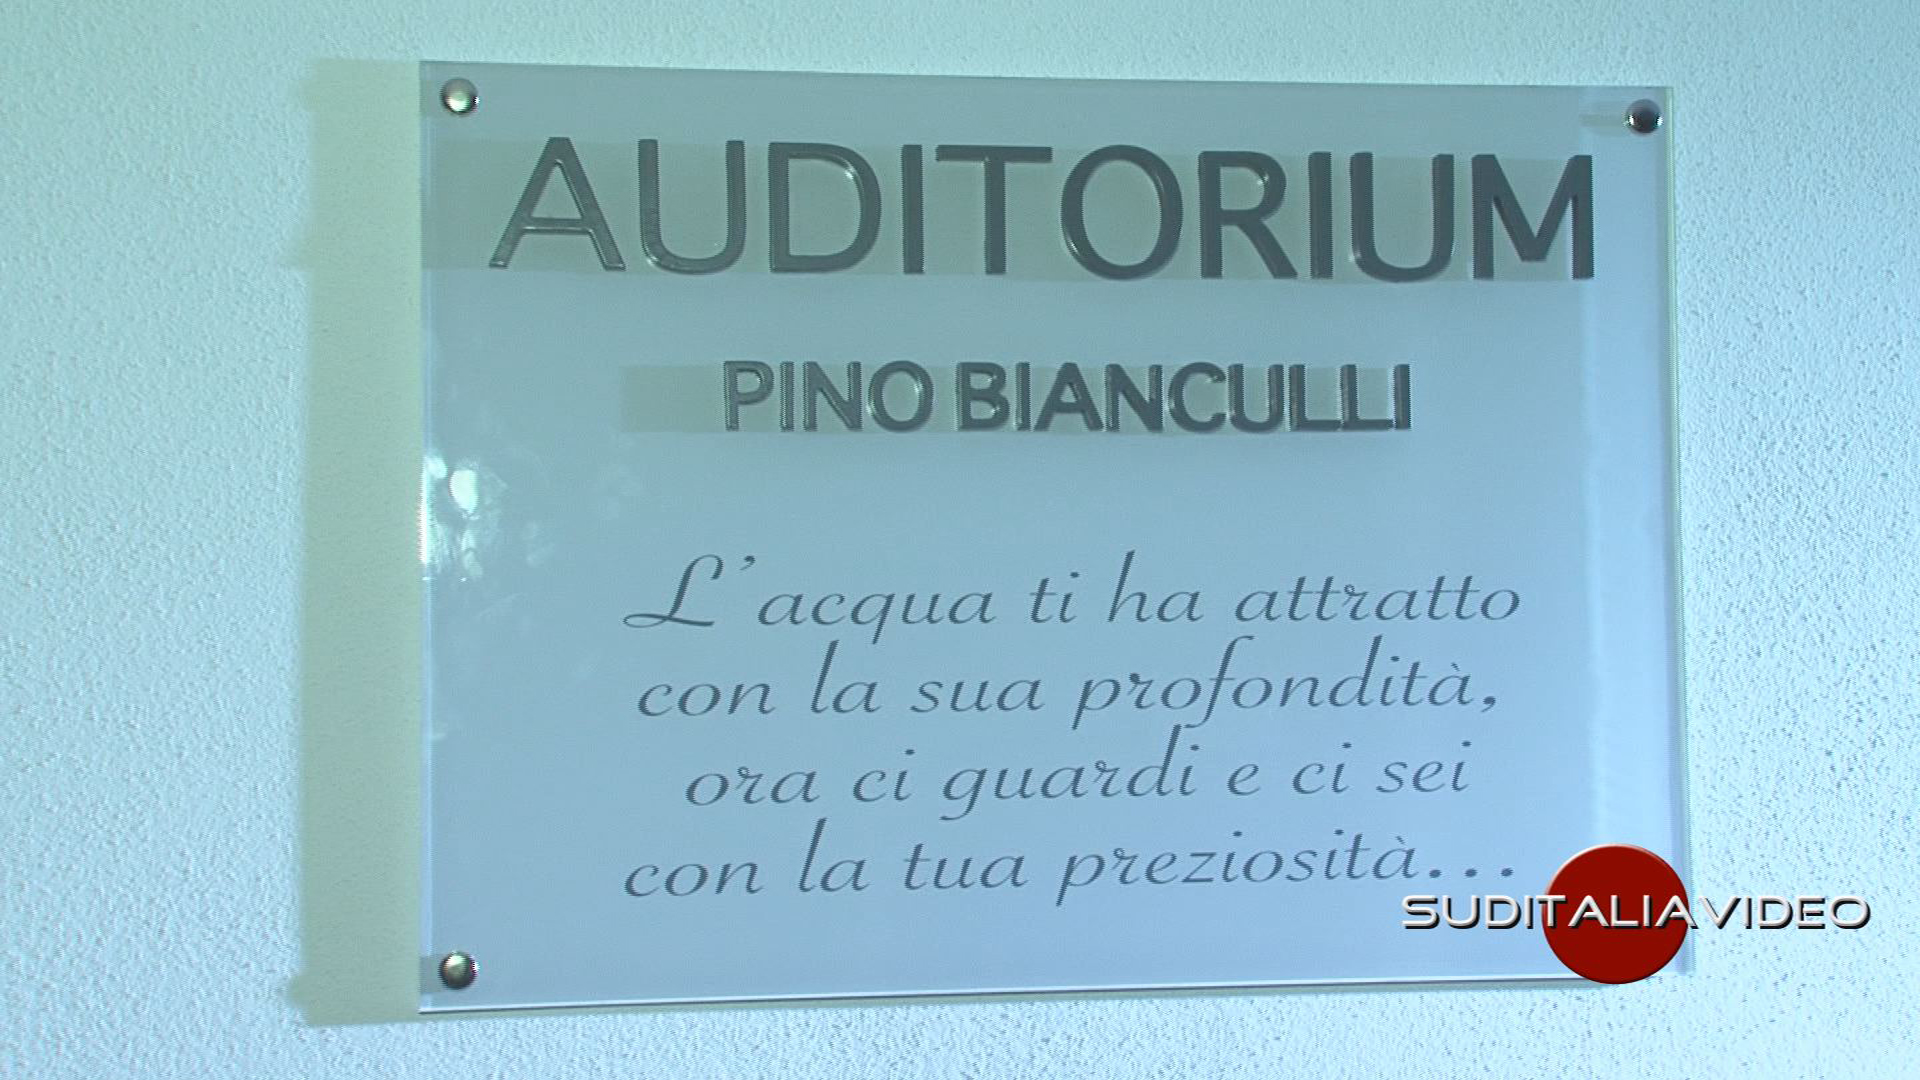 FOTO HOME AUDITORIUMBIANCULLI